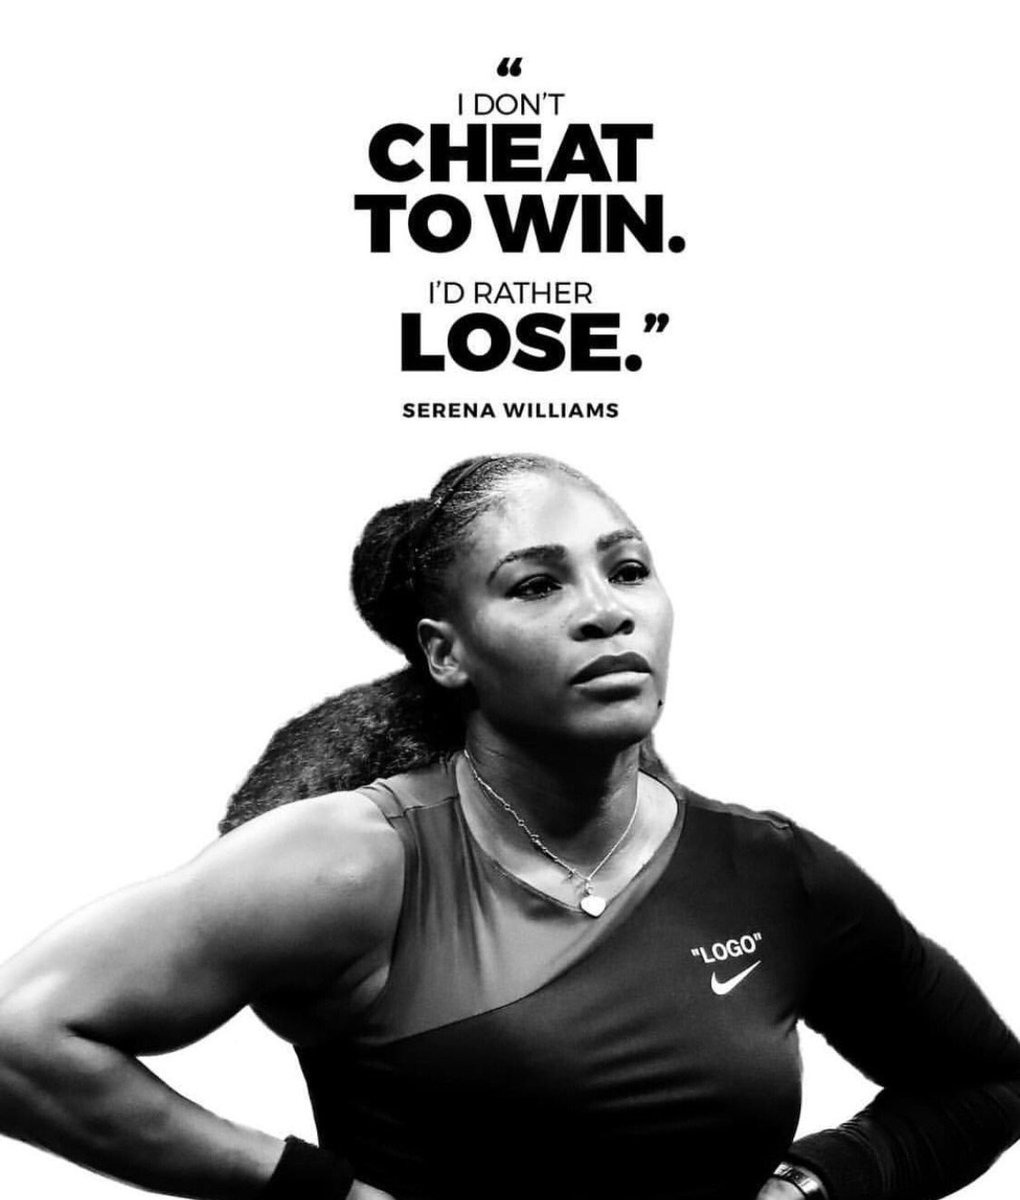 So much love for @serenawilliams XO https://t.co/LpLt7NE9gX